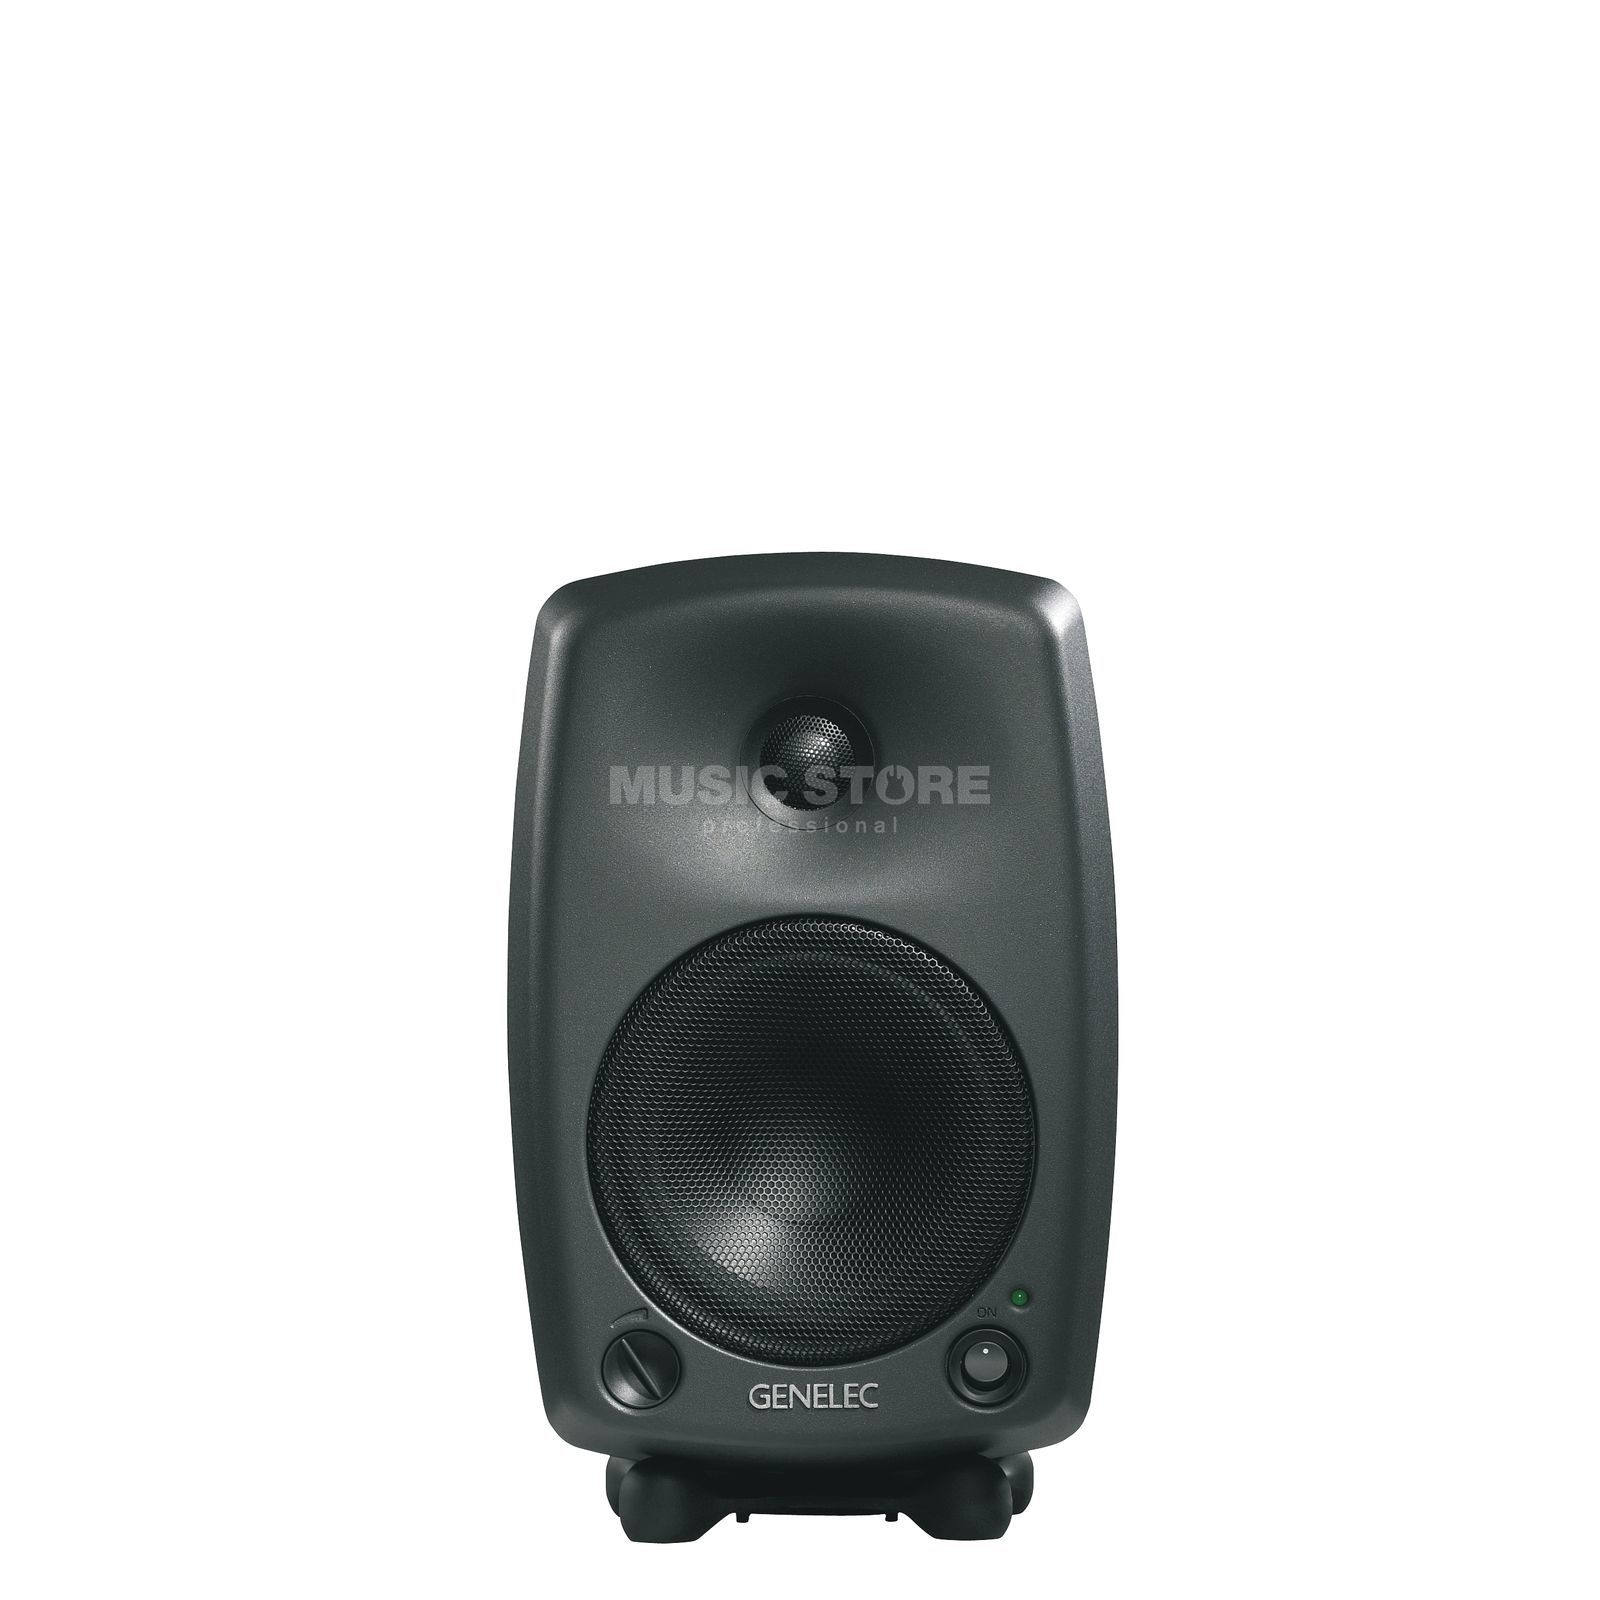 Genelec 8030BPM, SINGLE 2-Way Active Monitor Speaker, Matte Black Produktbillede